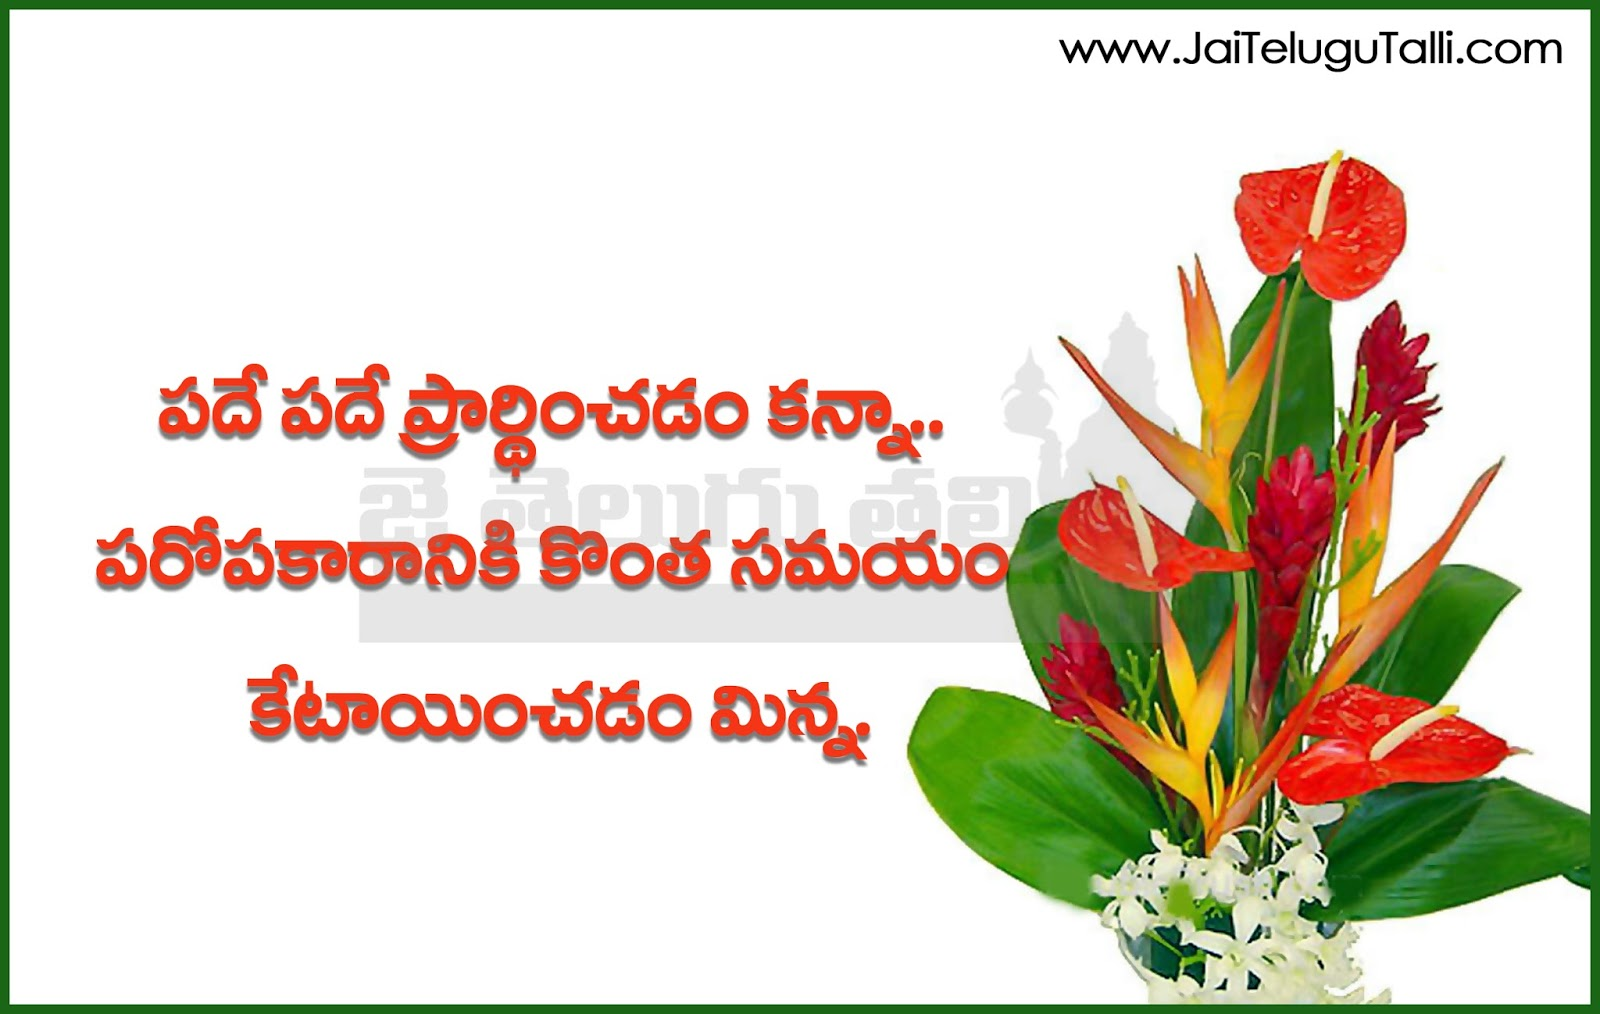 Beautiful flowers images with quotes in telugu allofthepicts best telugu quotations and images with beautiful hd flower izmirmasajfo